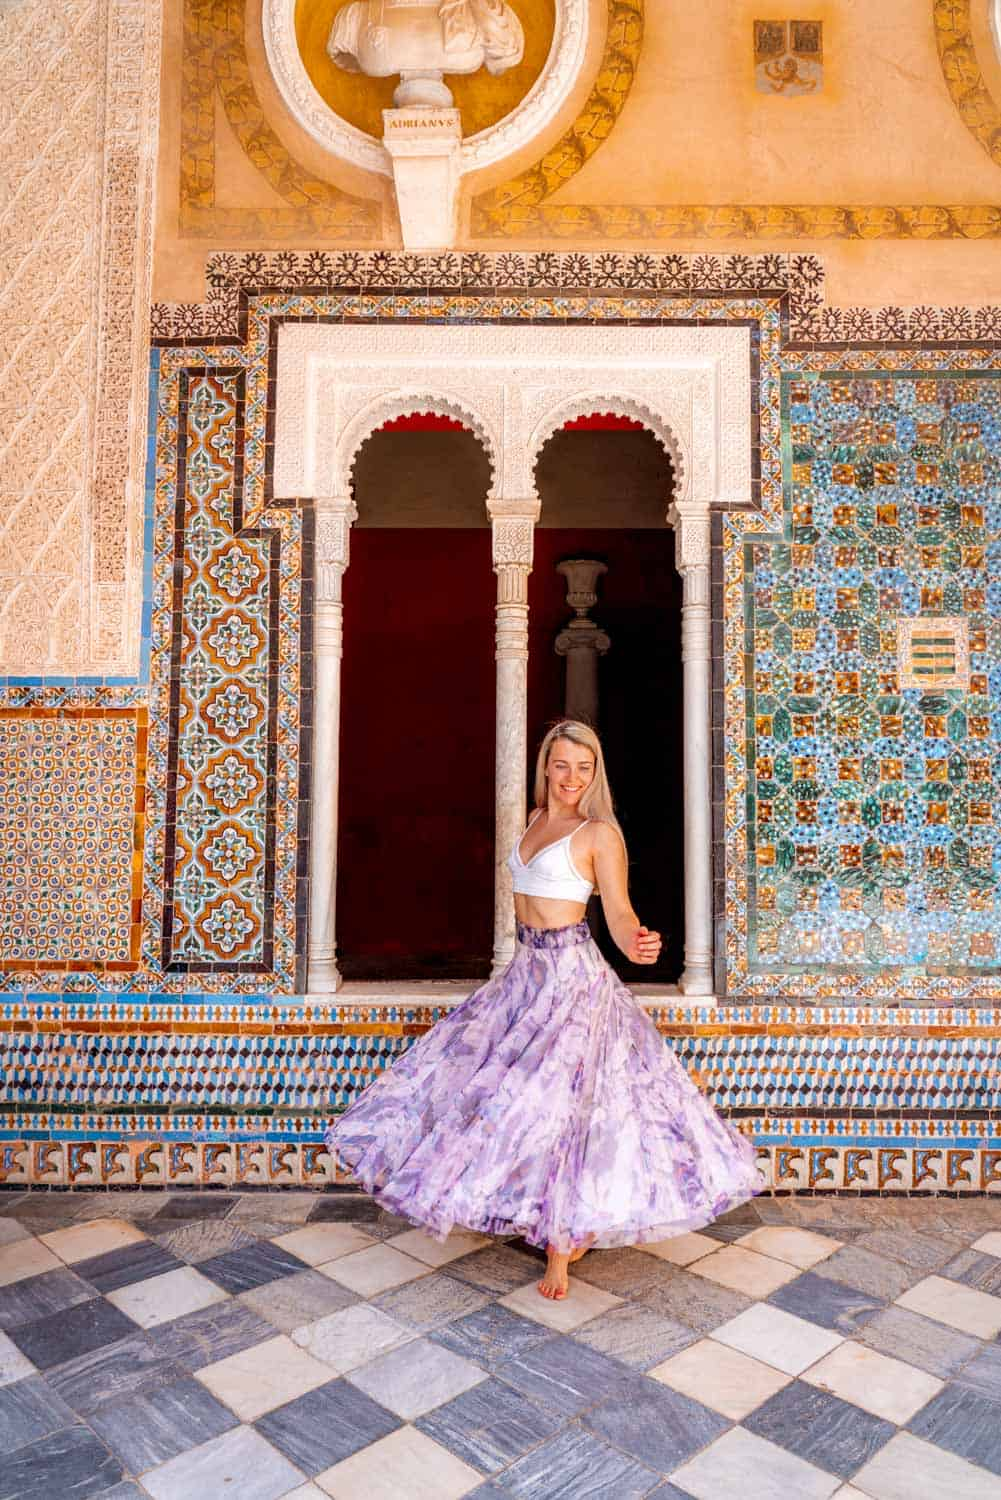 A girl in a skirt twirling in front of azulejo adorned archway in Casa de Pilatos Seville